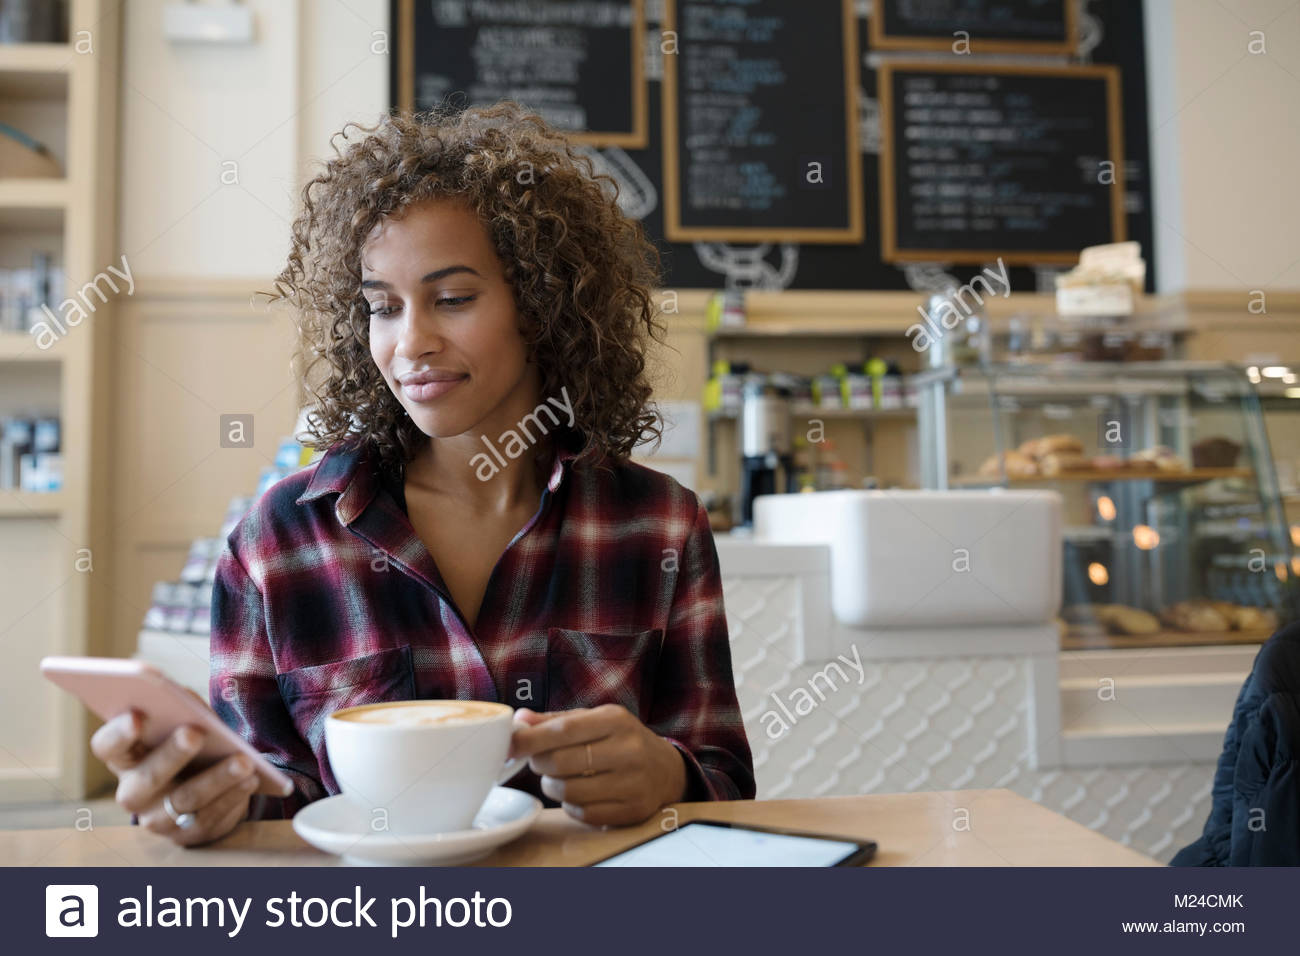 Young woman texting with smart phone and drinking cappuccino in cafe - Stock Image